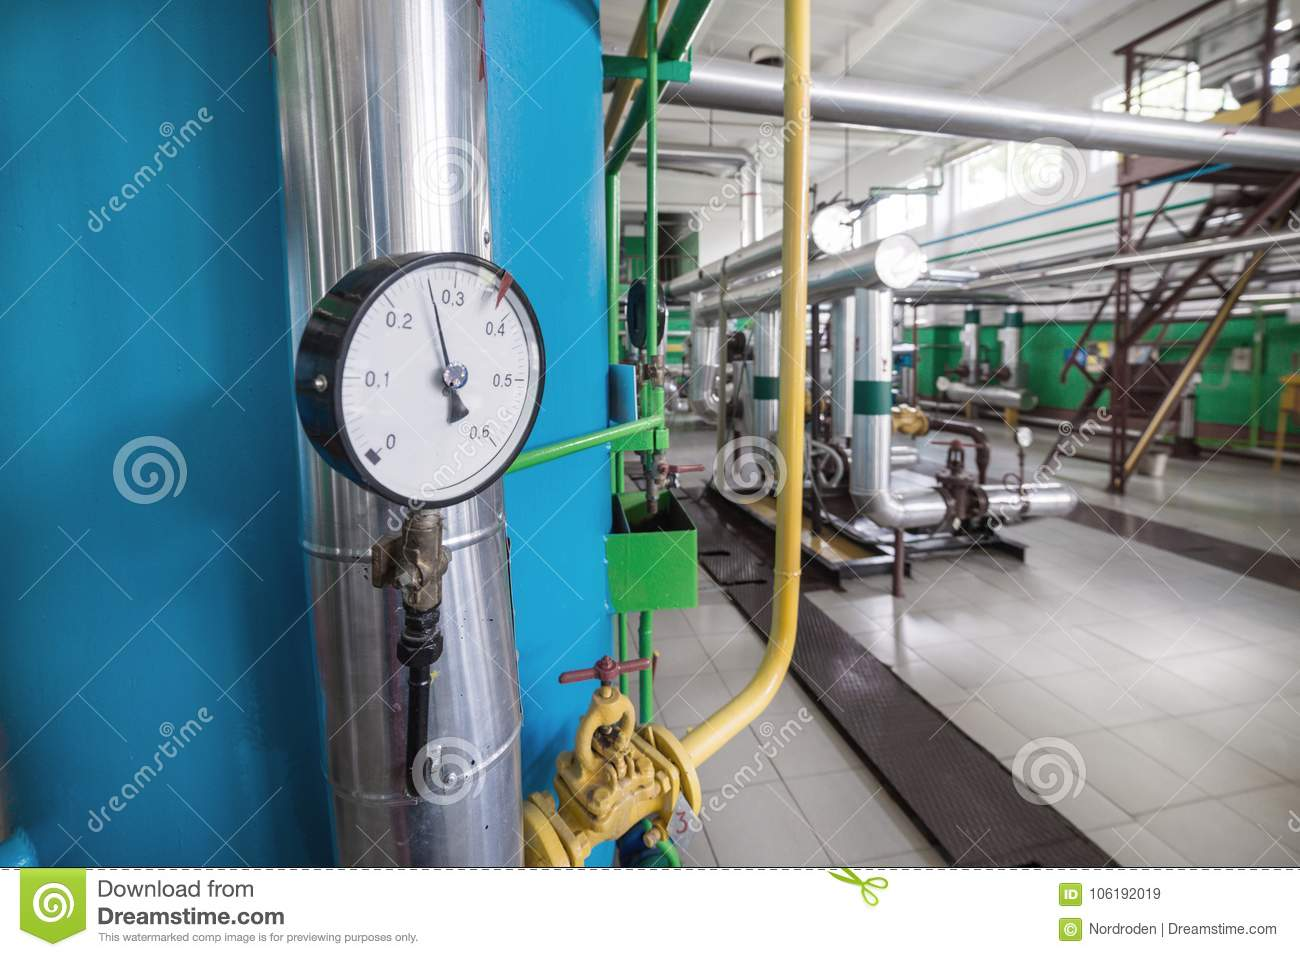 Round Mechanical Pressure Gauges On Pipelines. Stock Image - Image ...